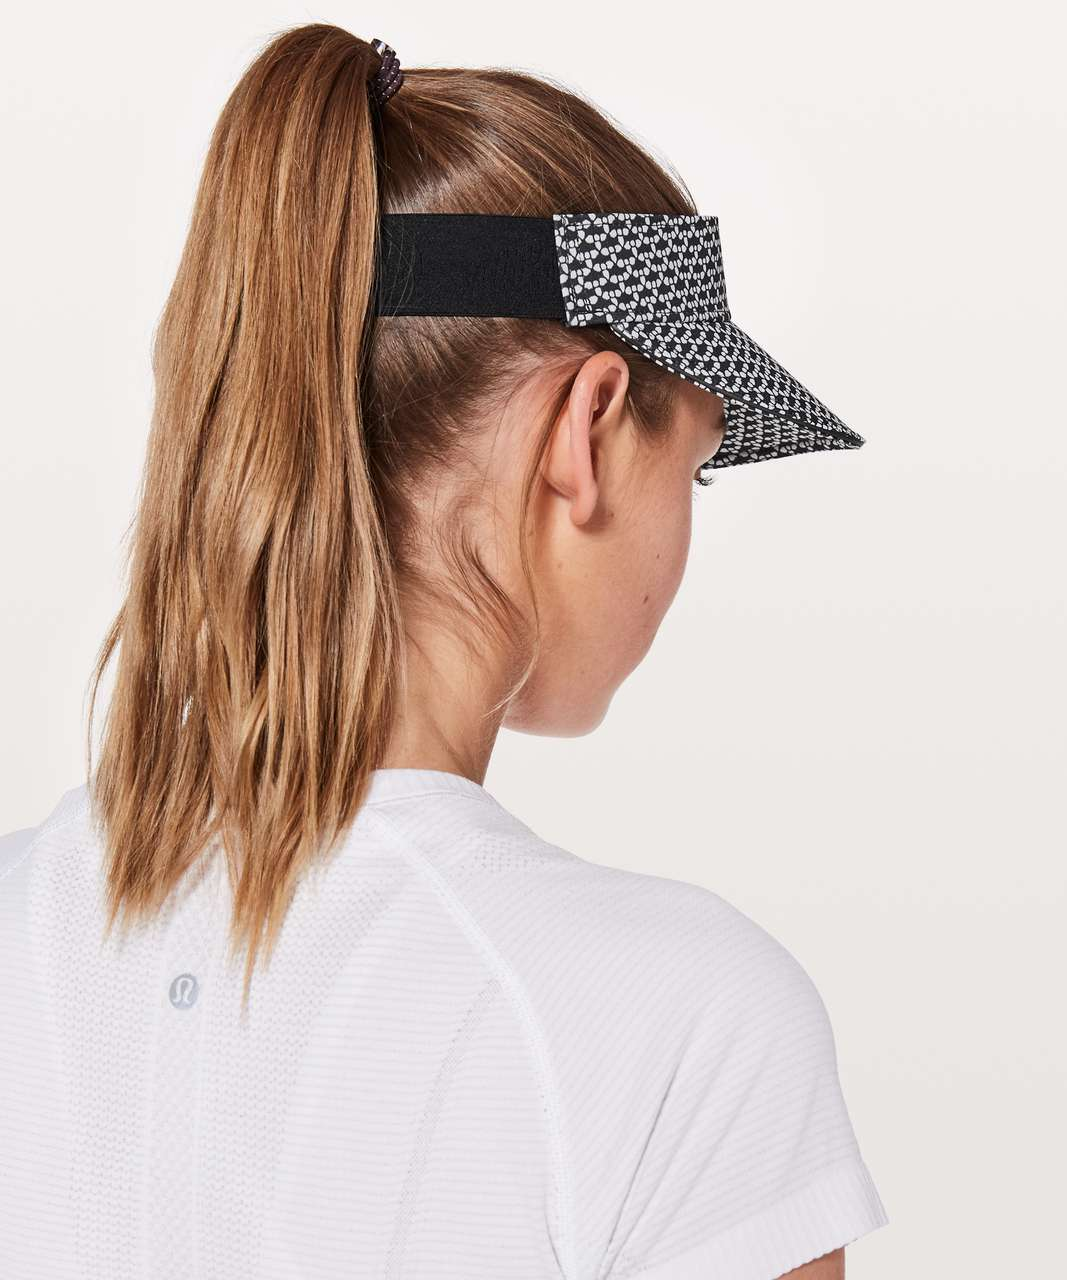 Lululemon Fast Paced Run Visor - Monochromic Black